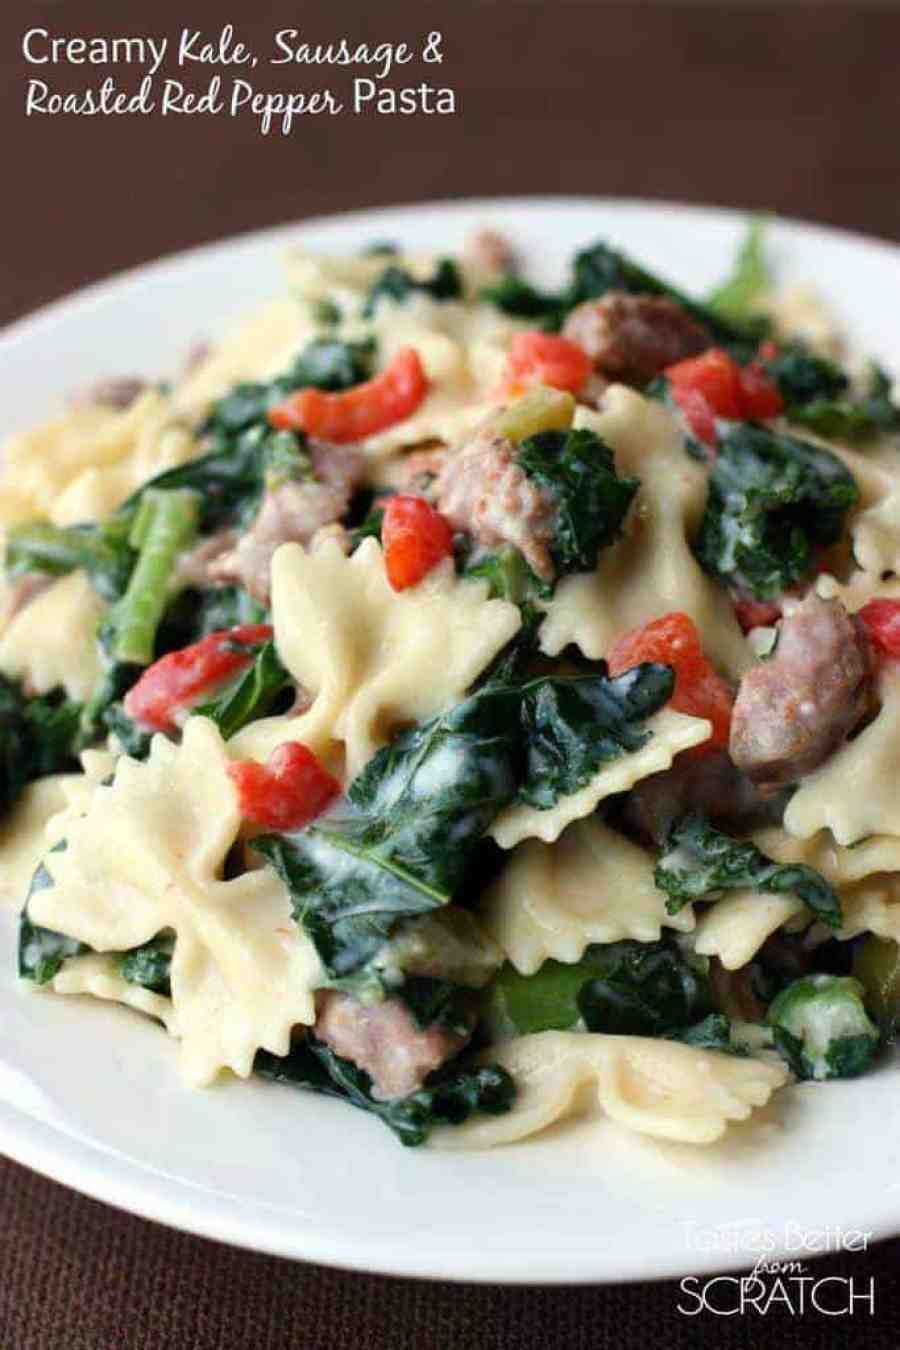 Creamy Kale, Sausage and Roasted Red Pepper Pasta from TastesBetterFromScratch.com